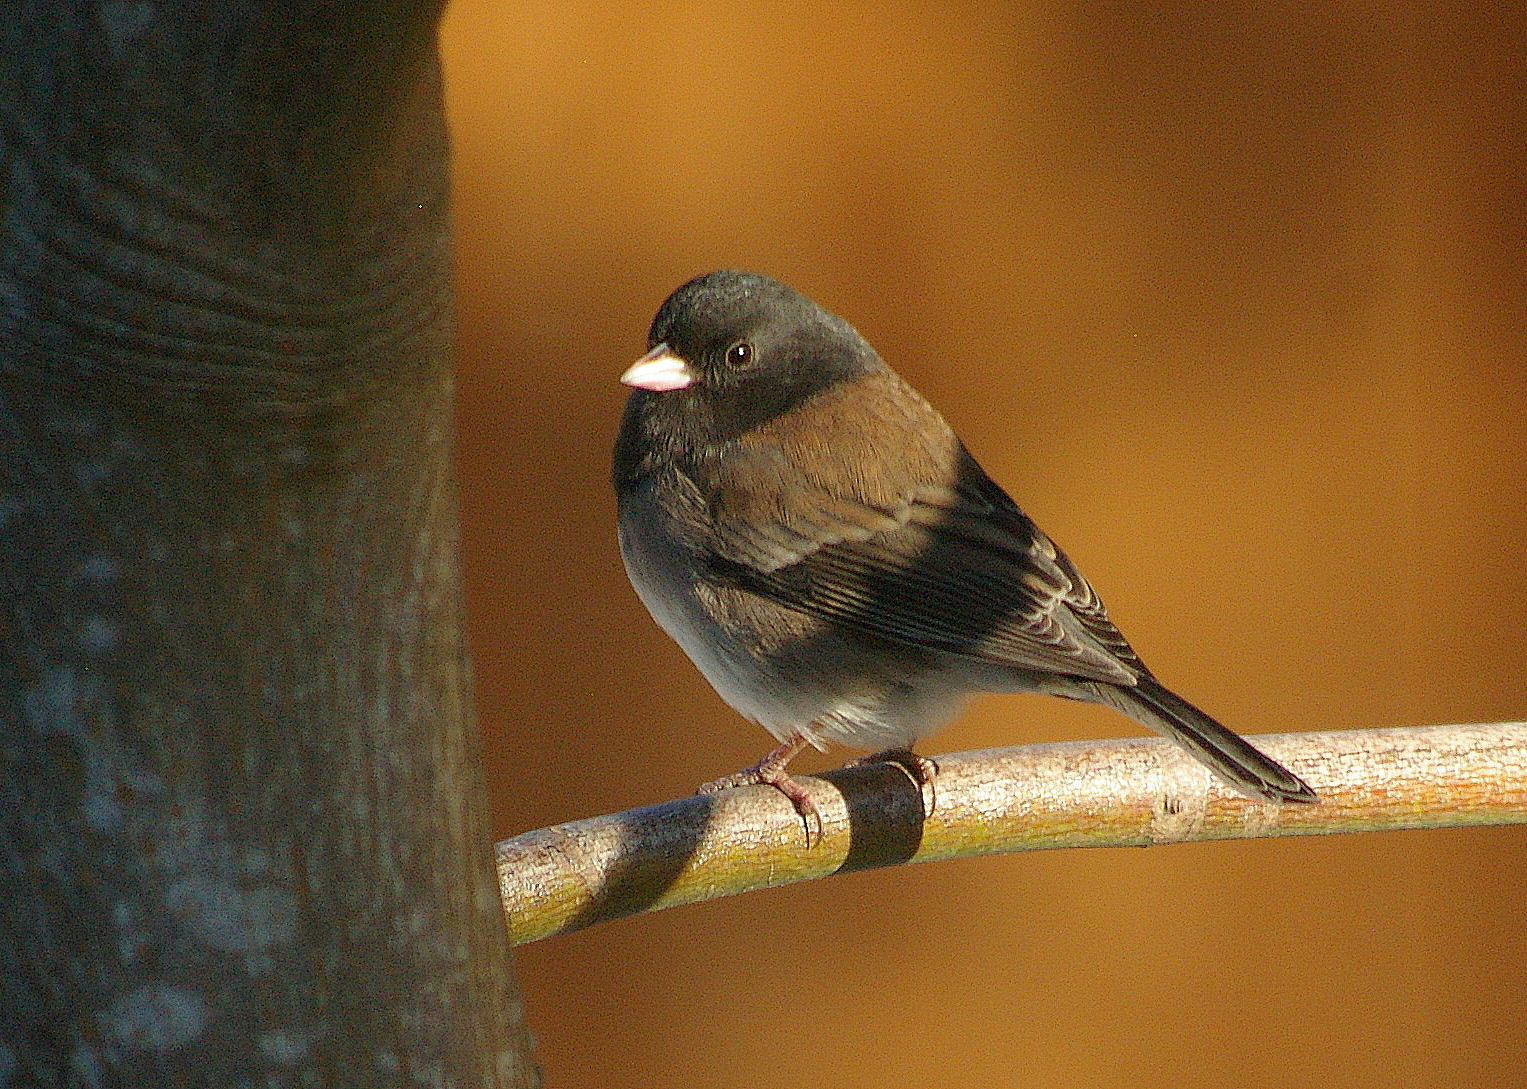 Dark-eyed Junco, Oregon variety. Photo by Garry Davey.